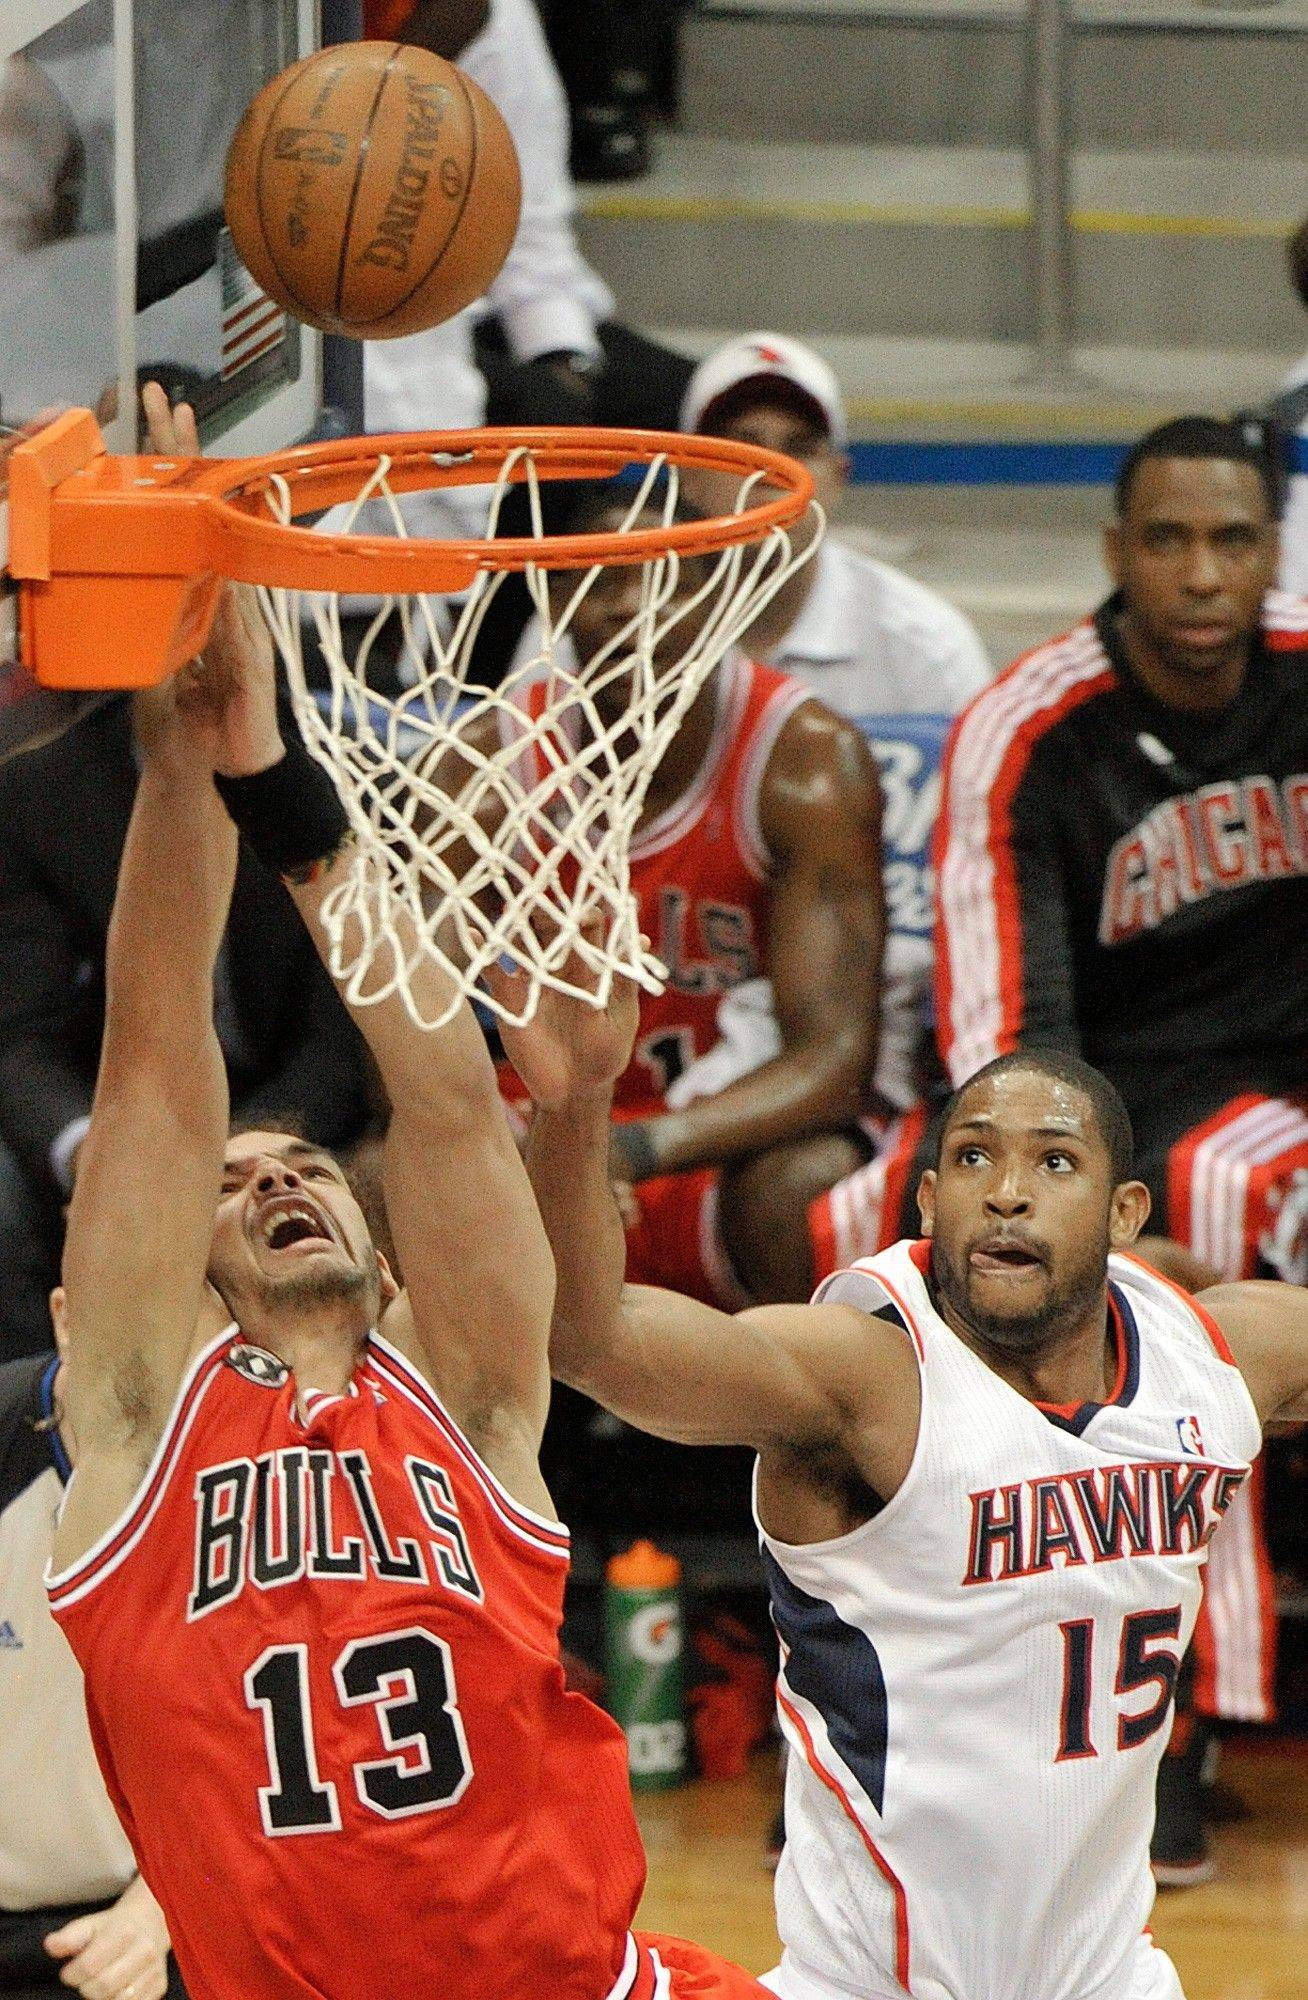 Joakim Noah shoots for a goal as Atlanta center Al Horford defends in the second quarter.